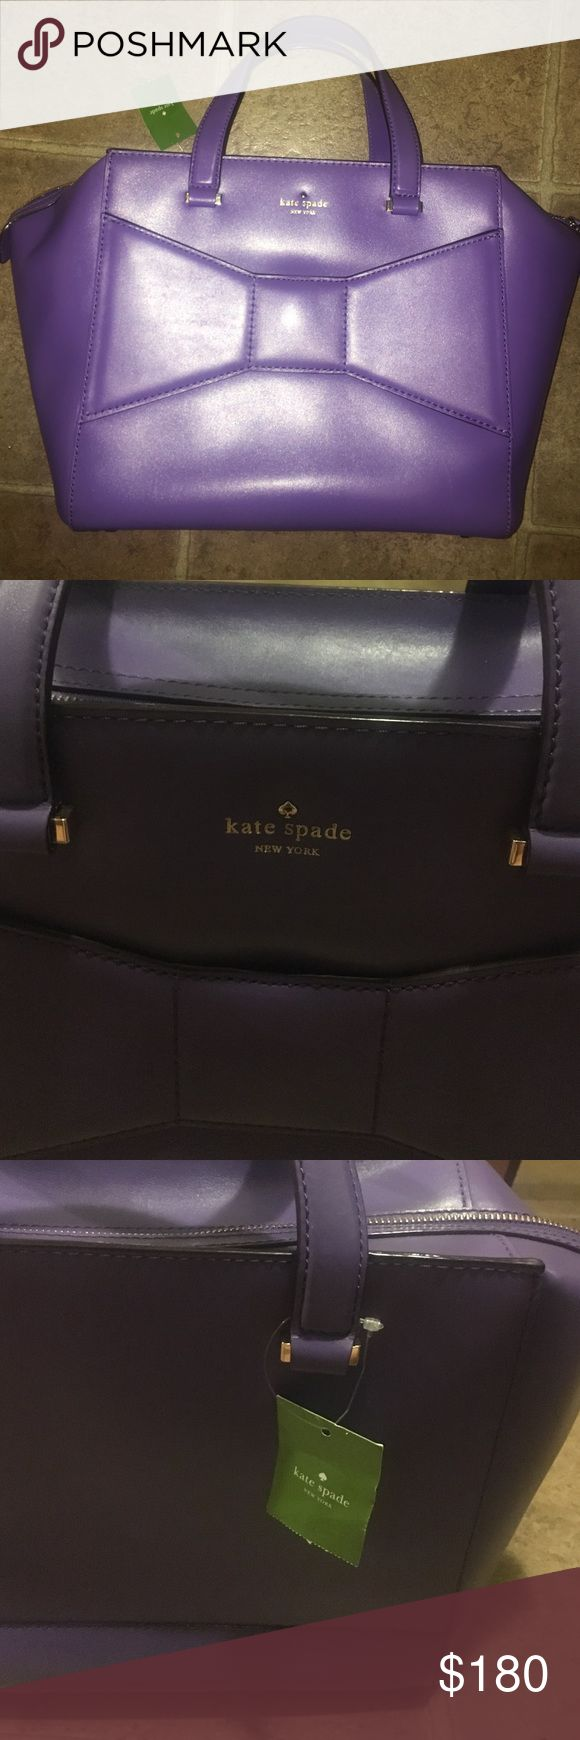 Purple Kate Spade purse for sale!!! Oversized purple book bag or purse! Perfect for a summer bag or a work bag. Kate Spade with storage bag and tags. kate spade Bags Laptop Bags